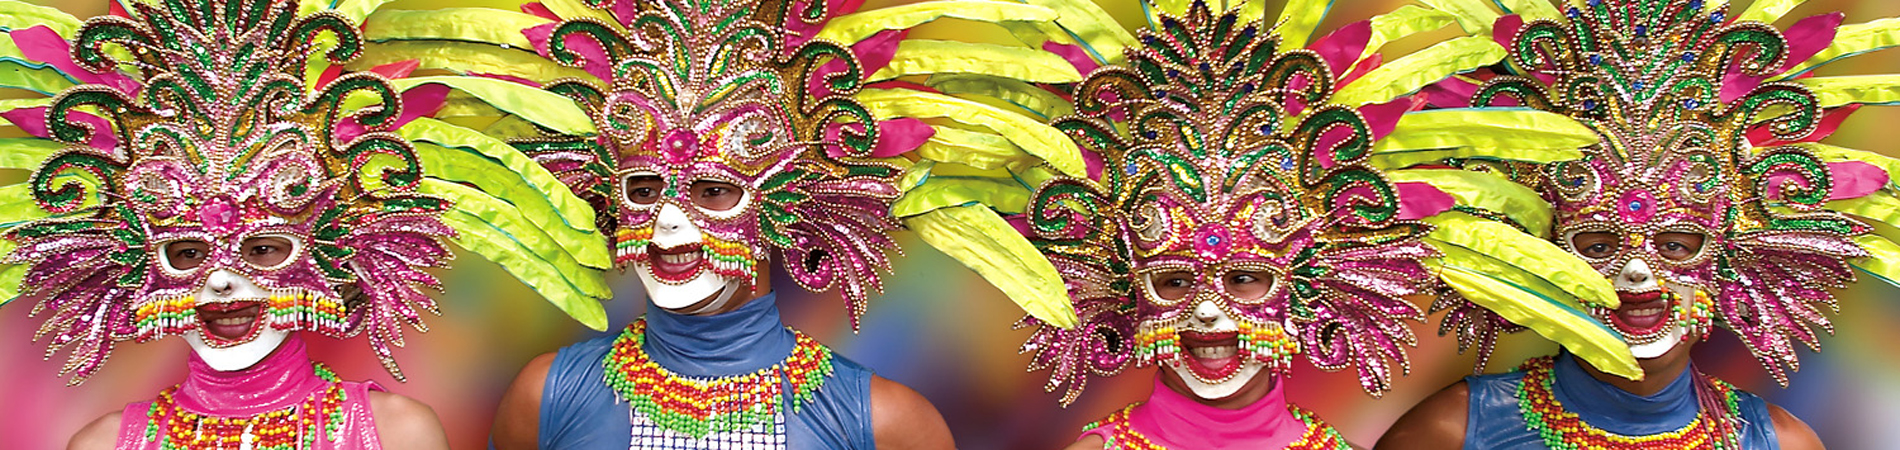 Philippines tourism PHI Masskara Festival header